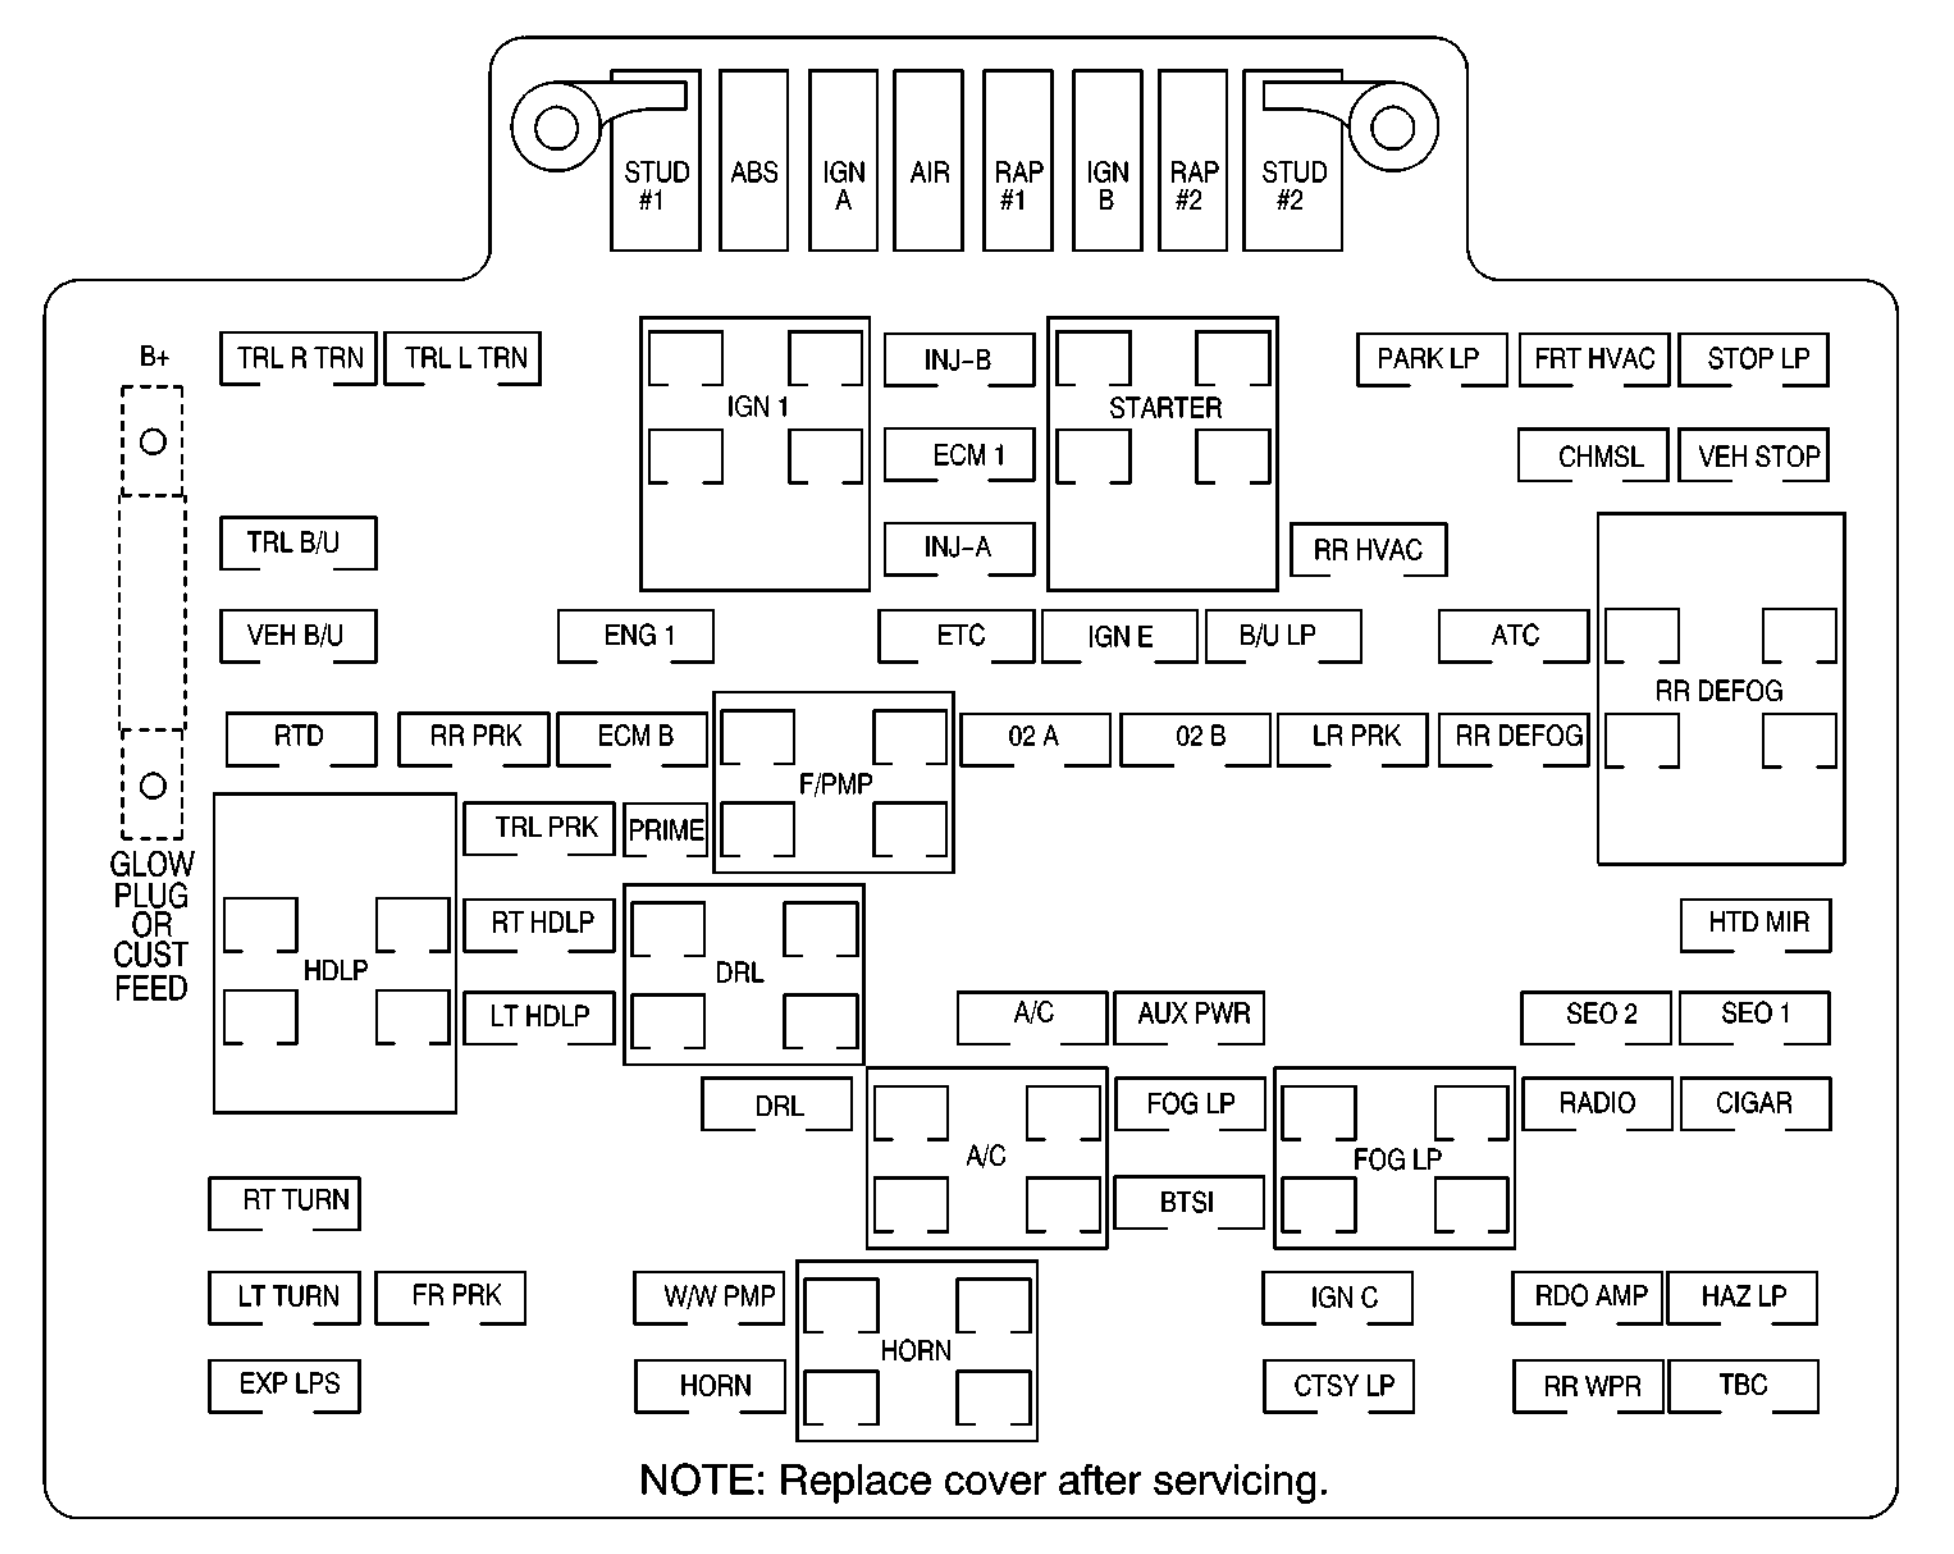 2013 tahoe fuse box wiring diagramtahoe fuse box wiring diagram data schema2002 tahoe fuse diagram wiring diagram database 2003 tahoe fuse